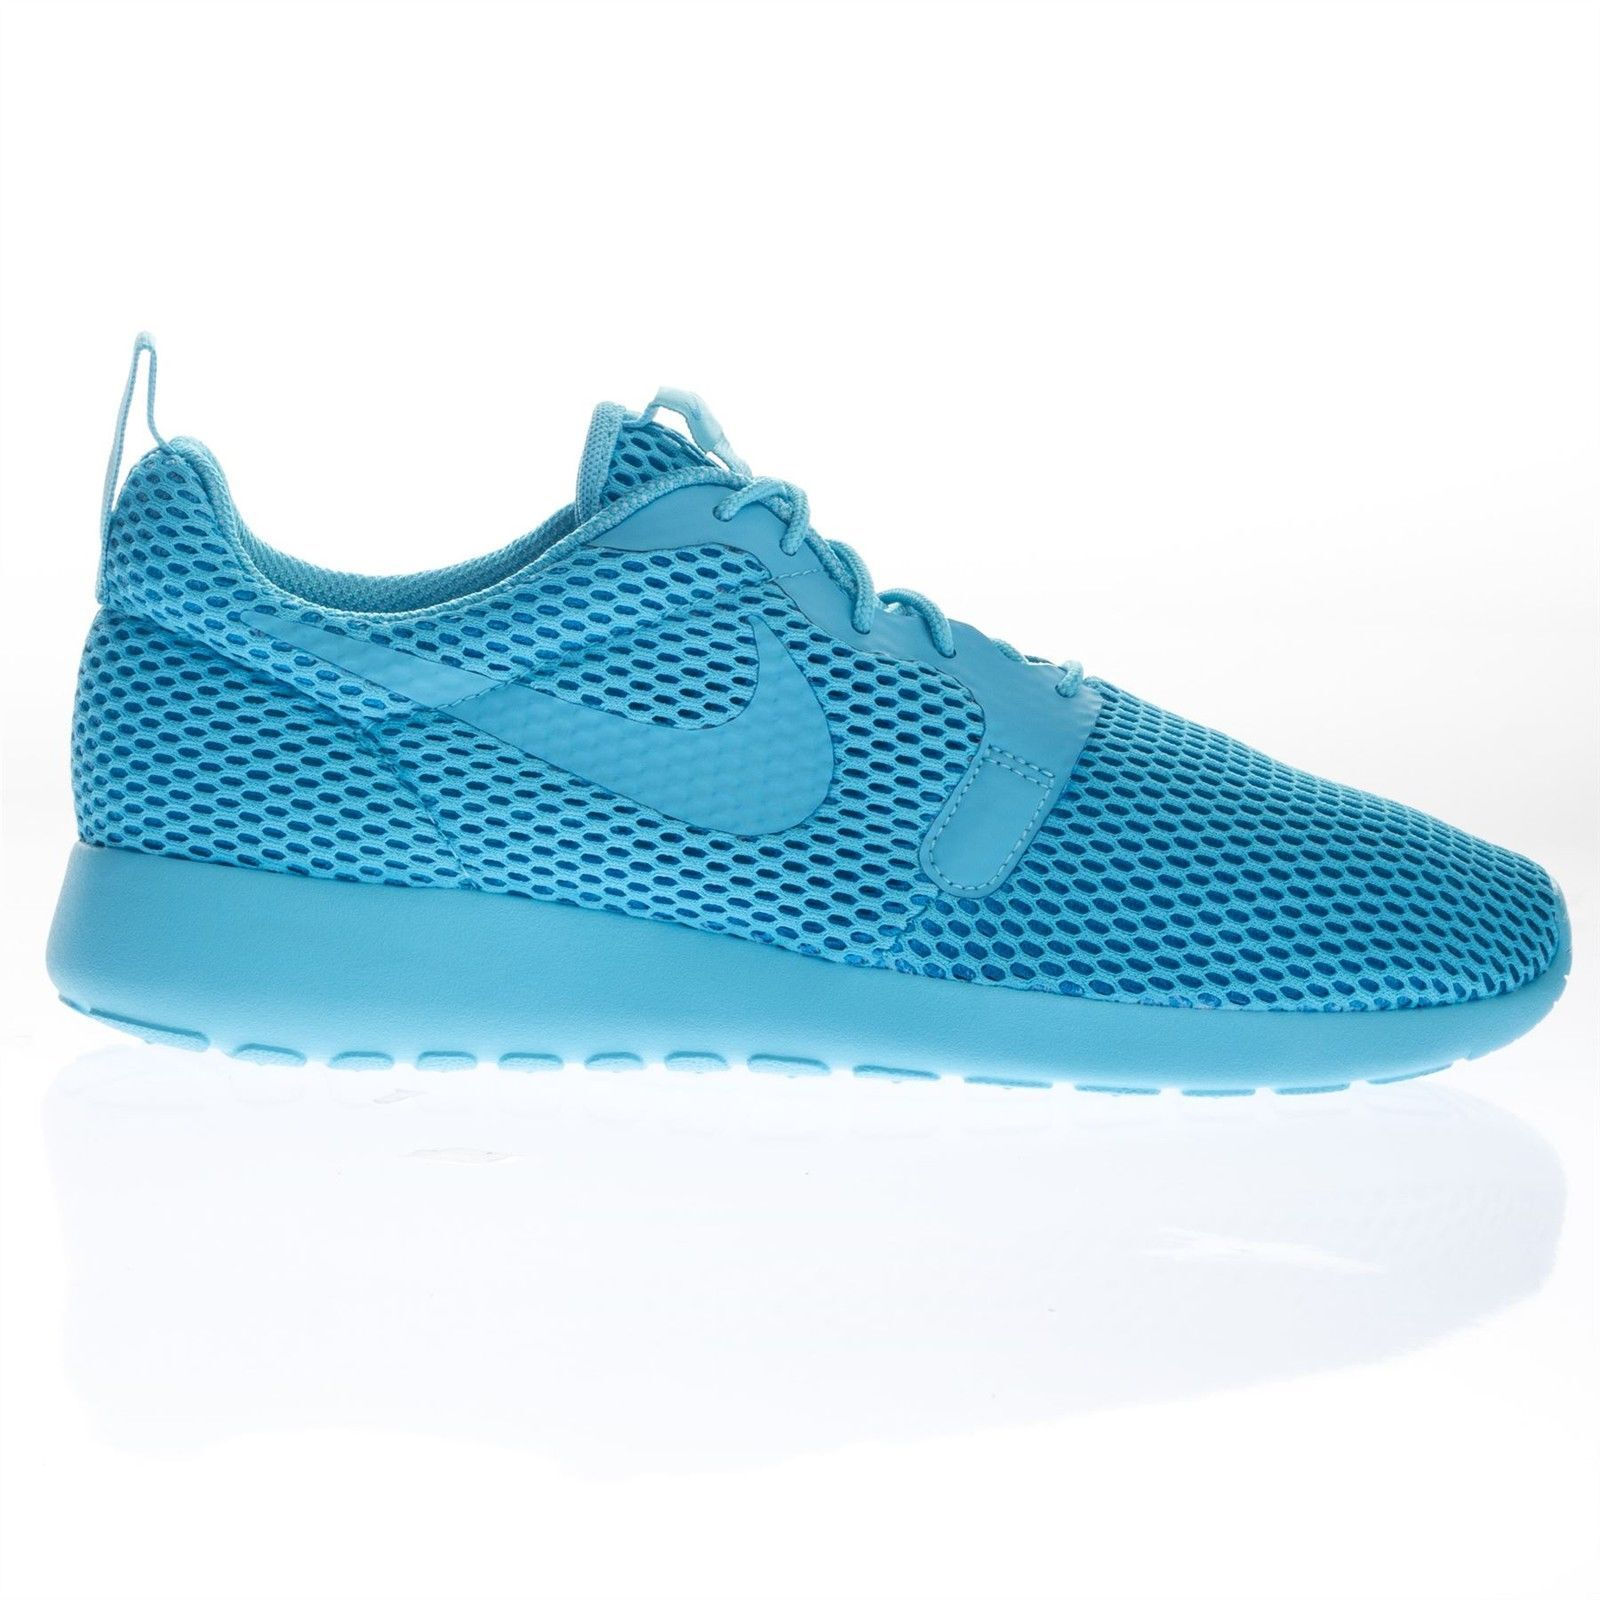 Nike Femme Roshe One Hyperfuse Breathe Low Top Gym Running Trainers